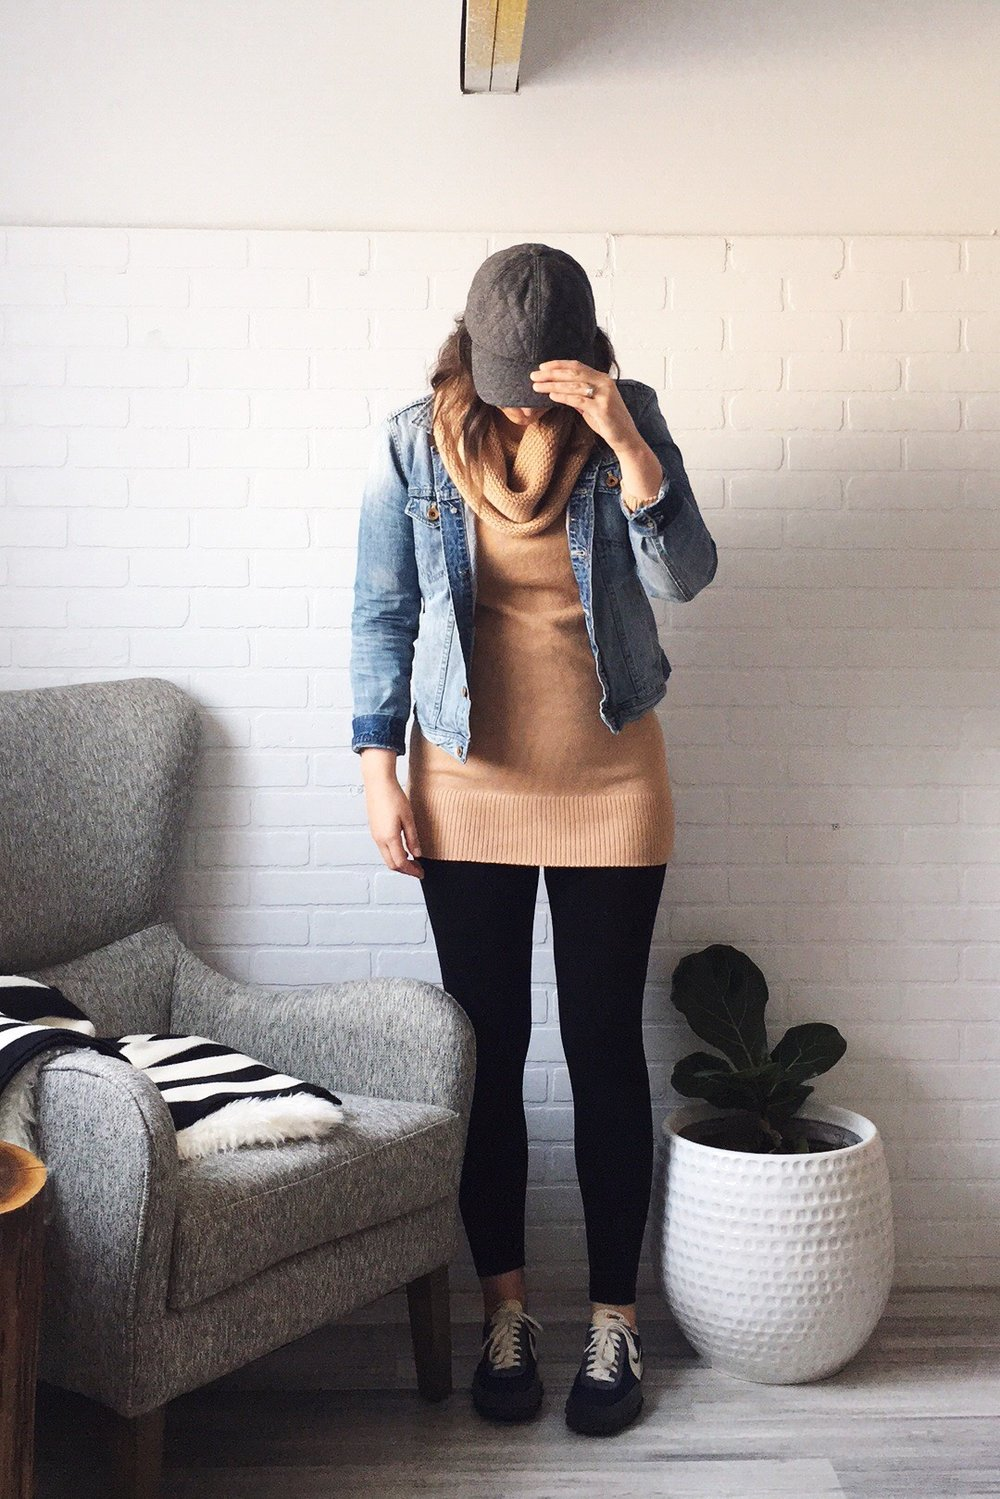 hat: Madewell / jacket: Madewell (similar) / sweater: H&M / leggings: M.Rena via Mainstream Boutique / shoes: J.Crew